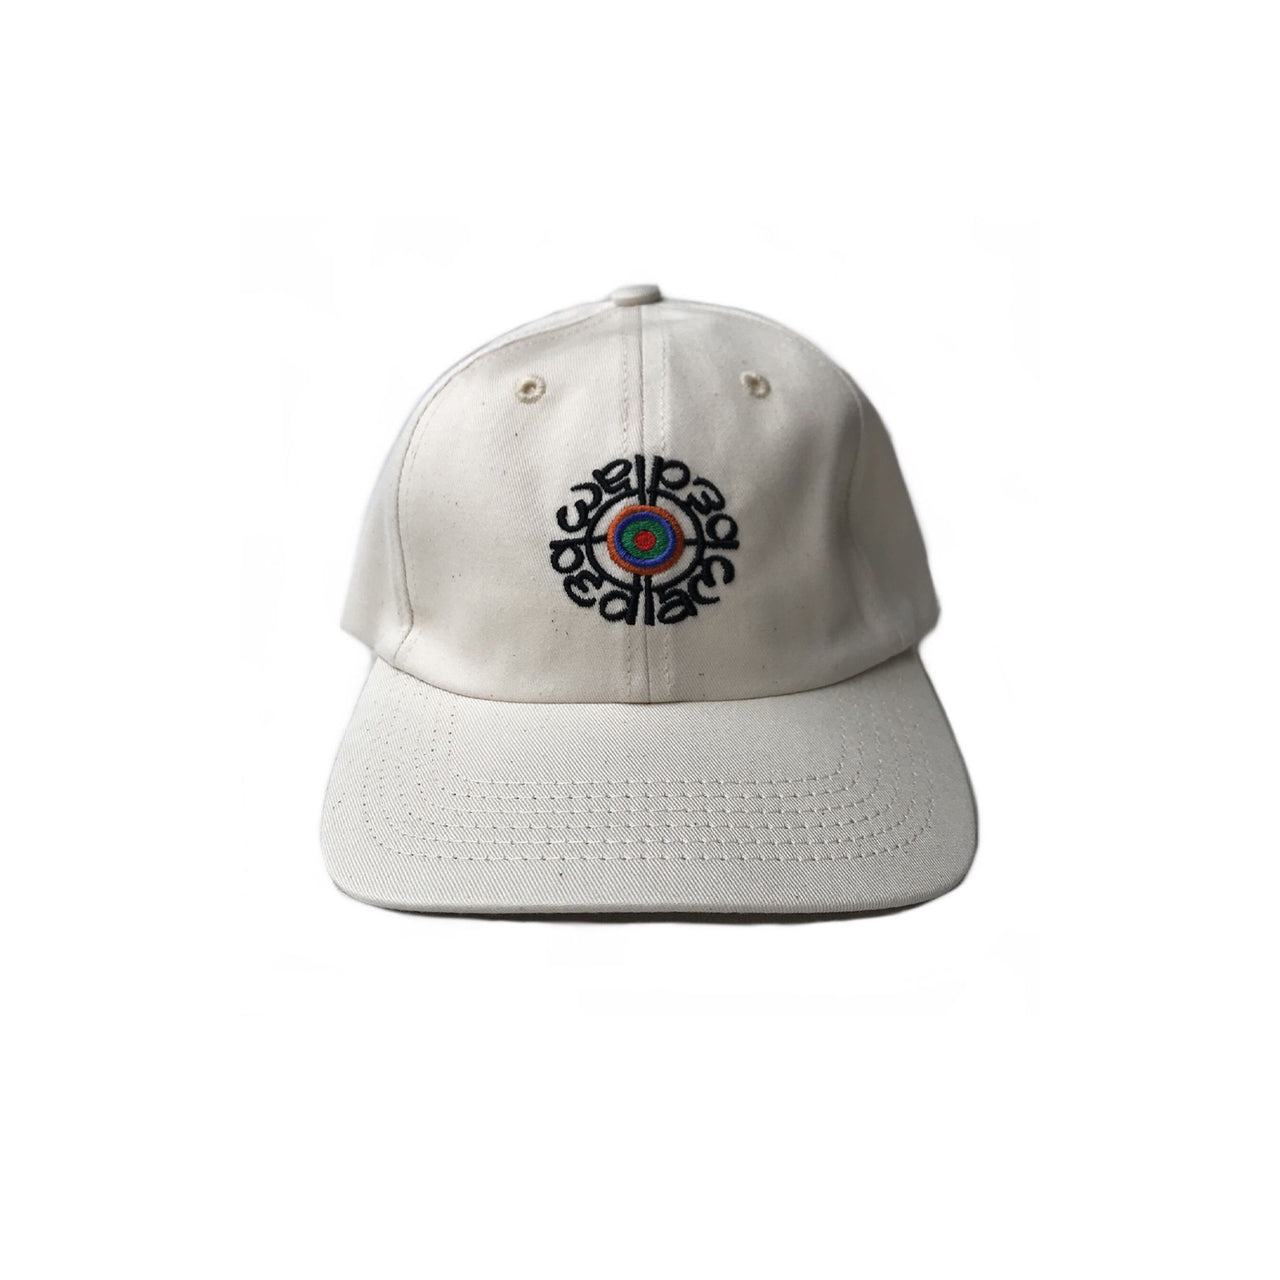 USA Target Hat (Off White)